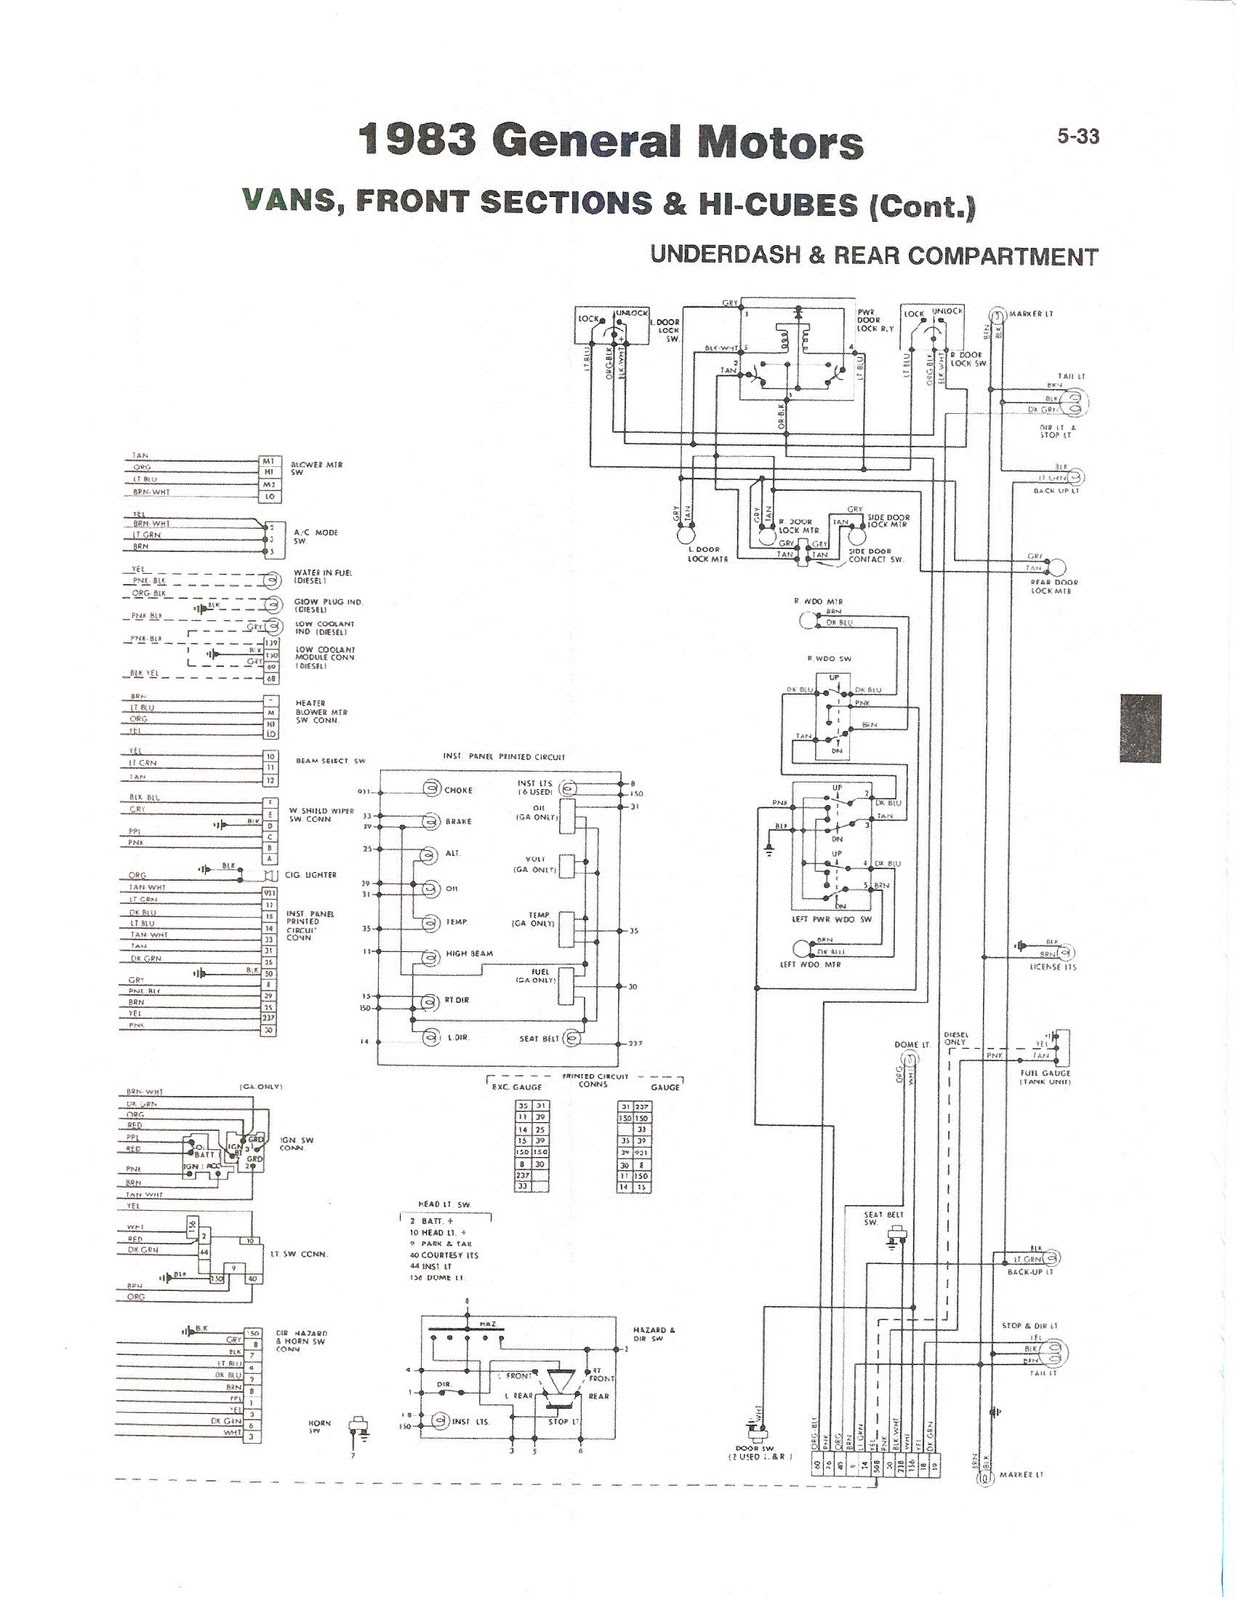 83+GM+Van+front+section+%26+Hi Cubes++underdash+%26+rear+compartment fleetwood rv wiring diagram rv park wiring diagram \u2022 free wiring fleetwood motorhome fuse diagrams at gsmx.co